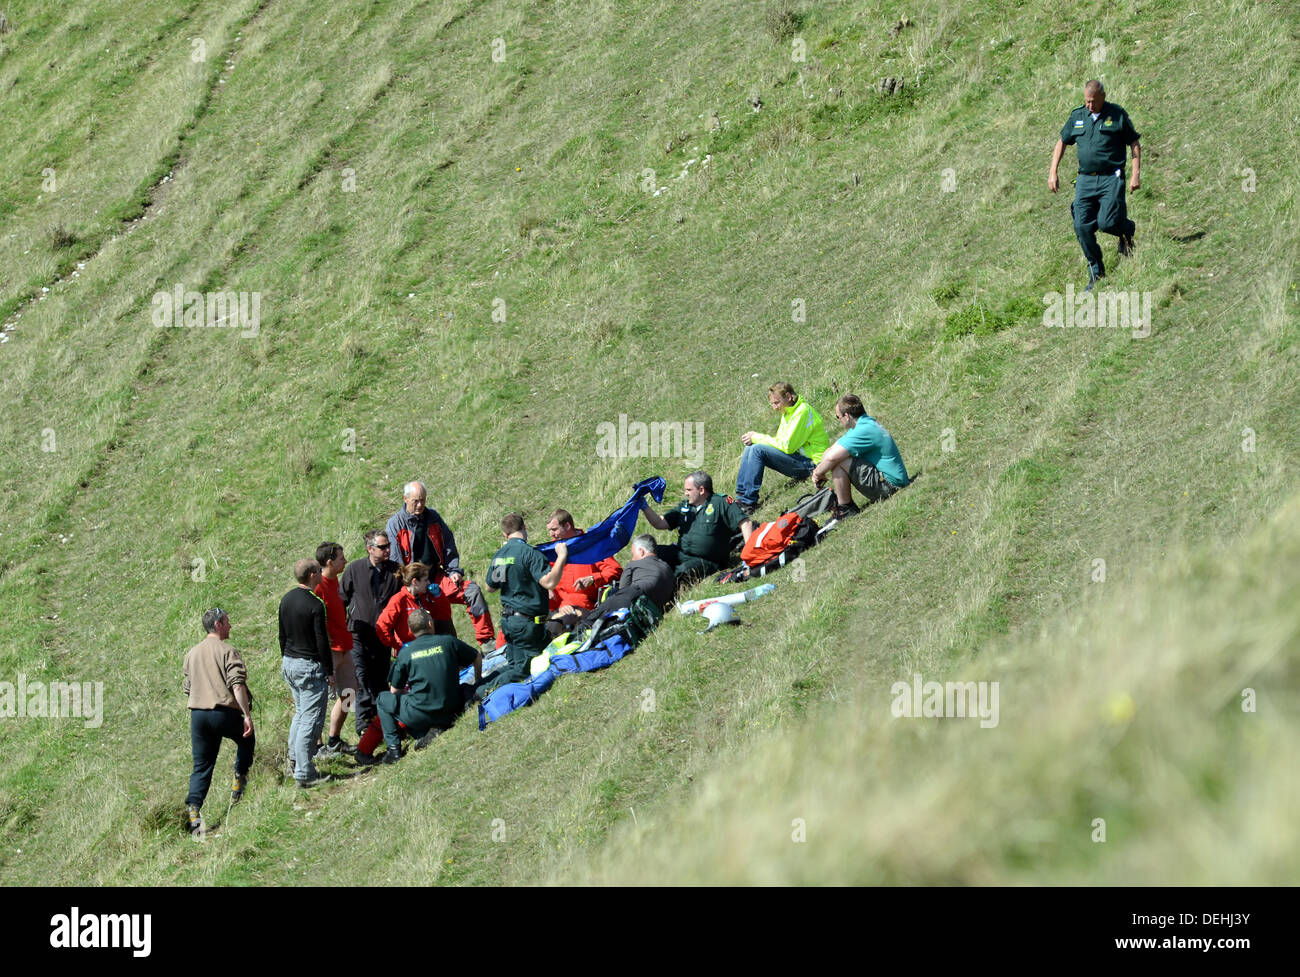 Kent Air Ambulance Teilnahme an der Szene eines Gleitschirms abstürzen, Mount Caburn, Lewes East Sussex Stockbild